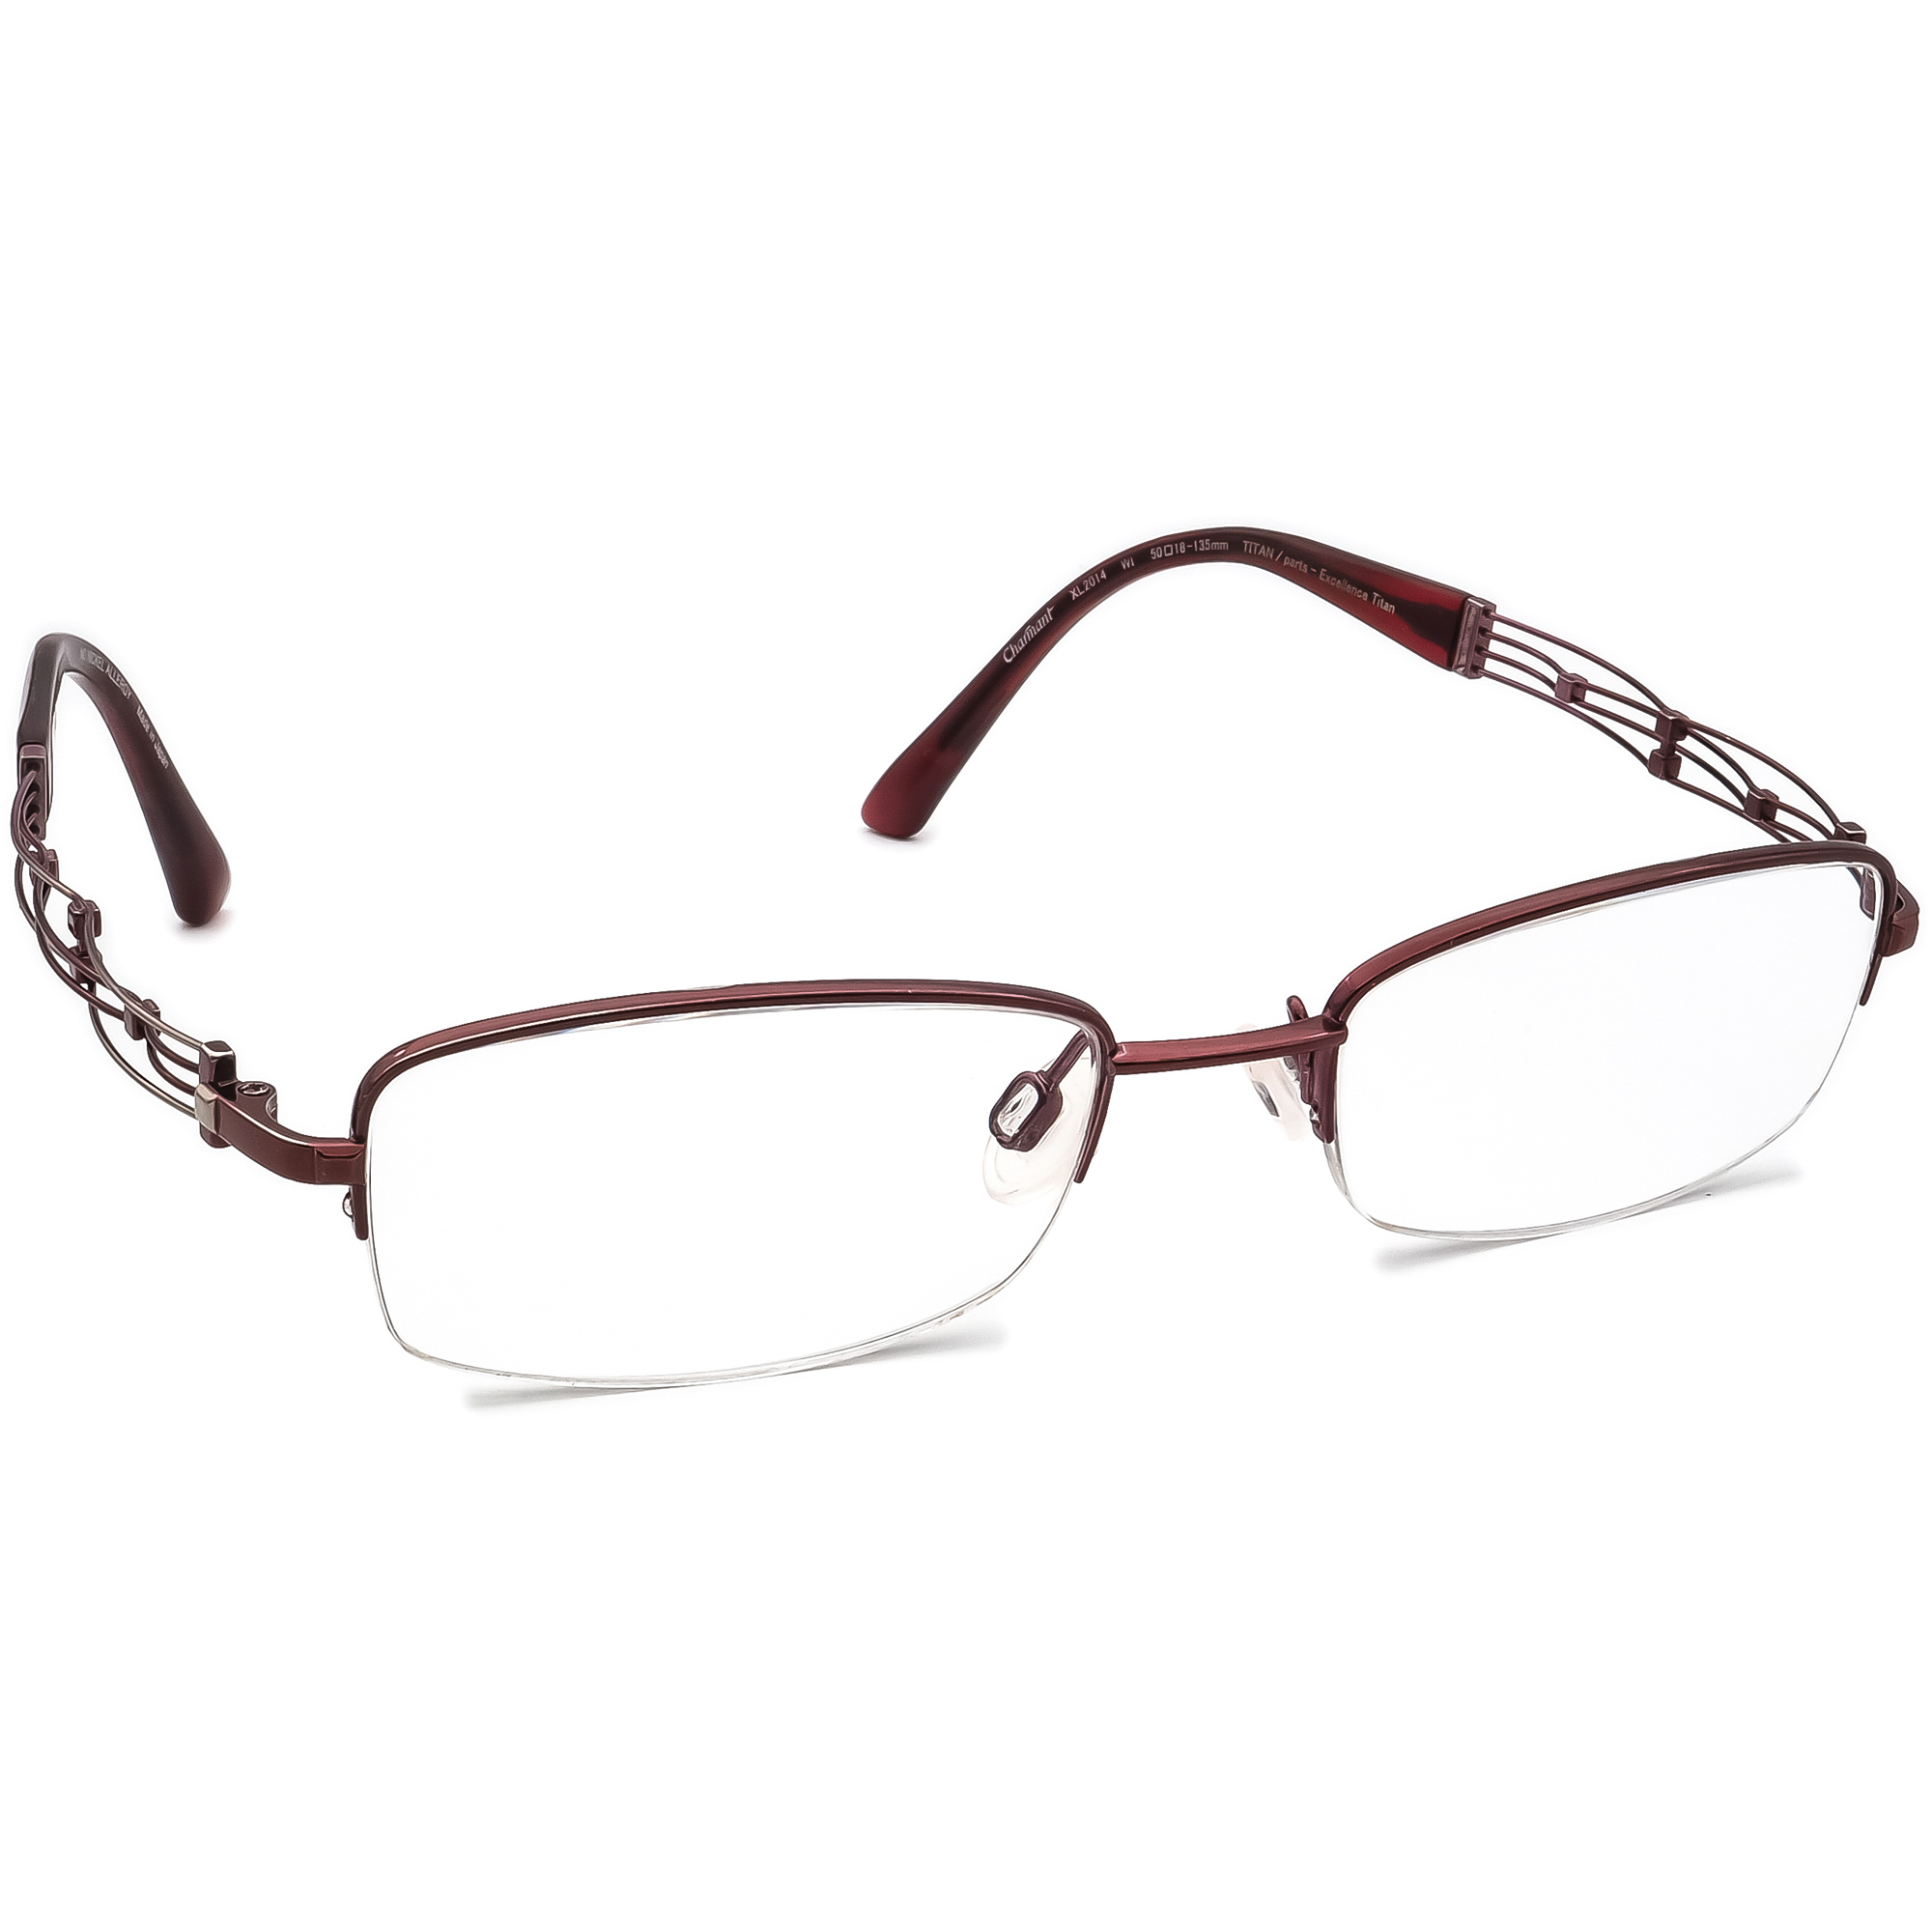 Charmant Eyeglasses XL 2014 WI Line Art Titanium Wine Half Rim Japan 50[]18 135